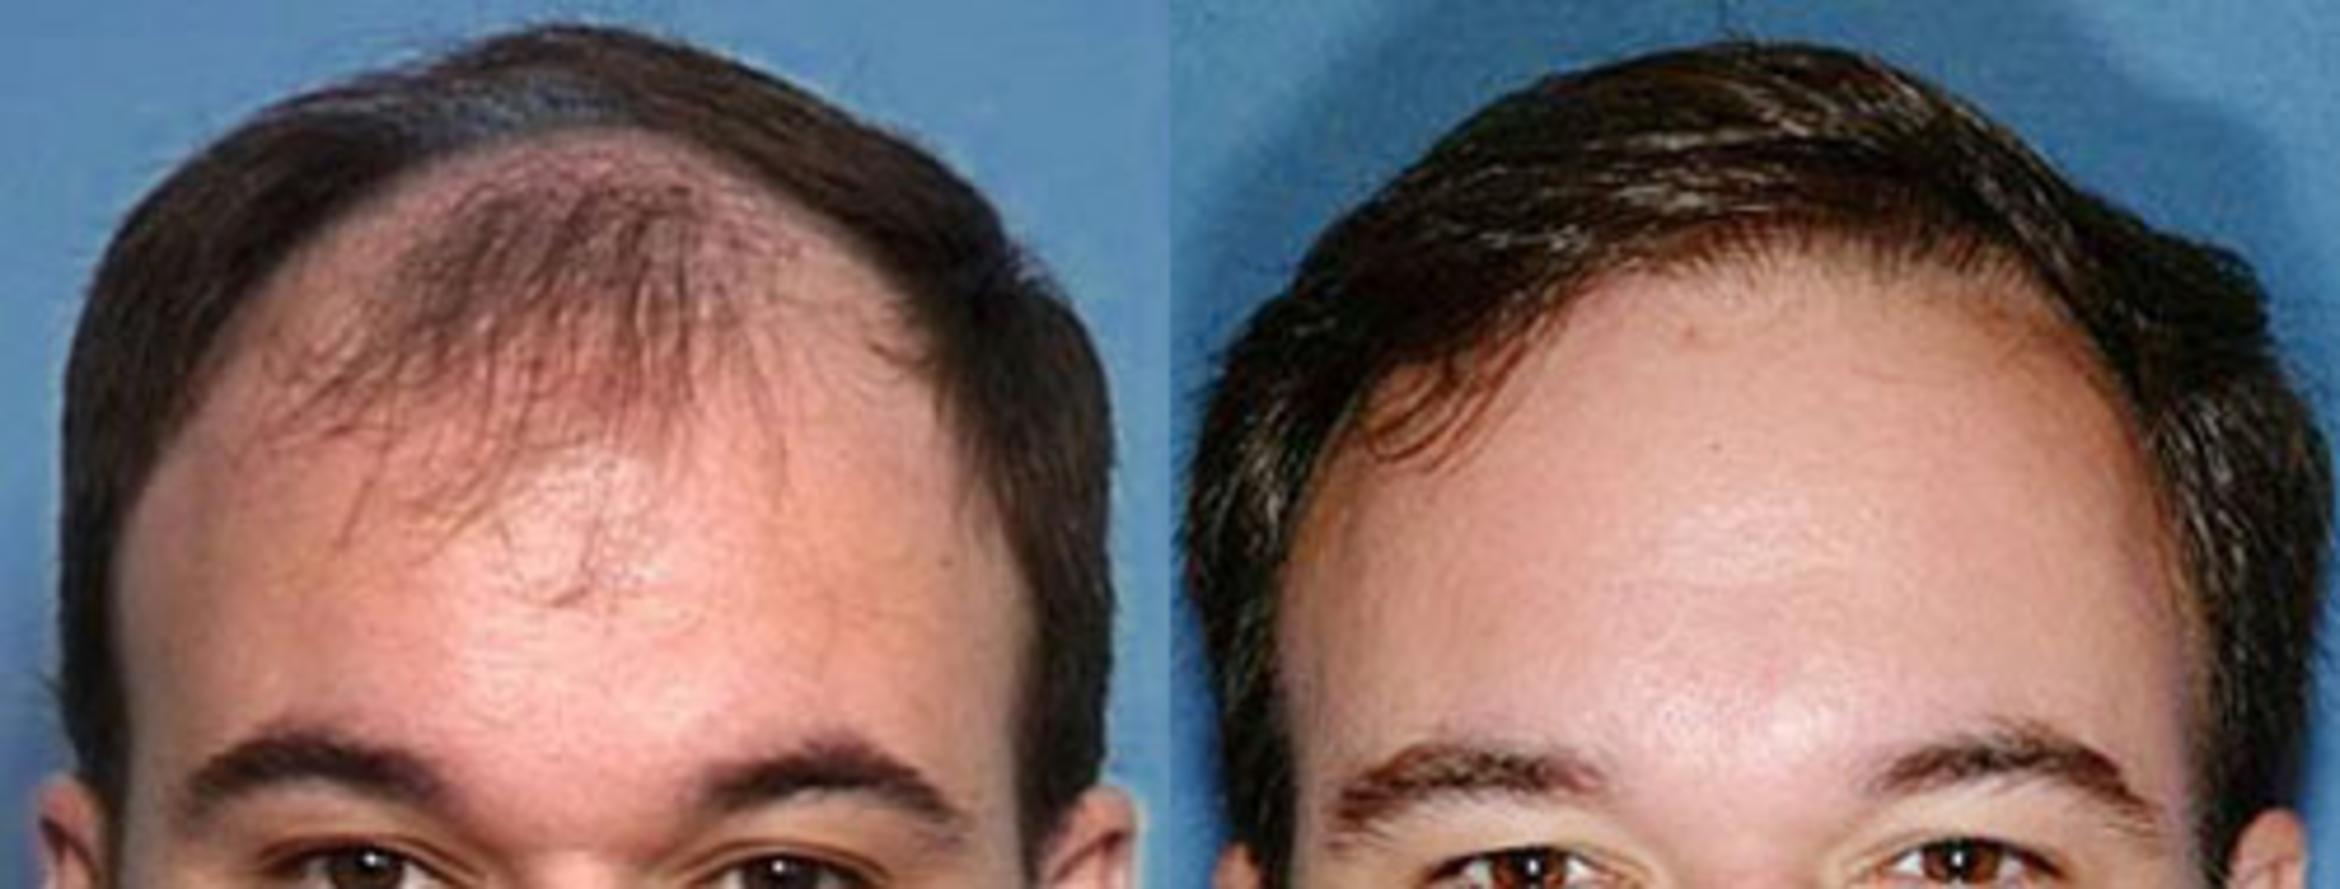 Hair Transplant Case 104 Before & After View #1 | Louisville, KY | CaloAesthetics® Plastic Surgery Center